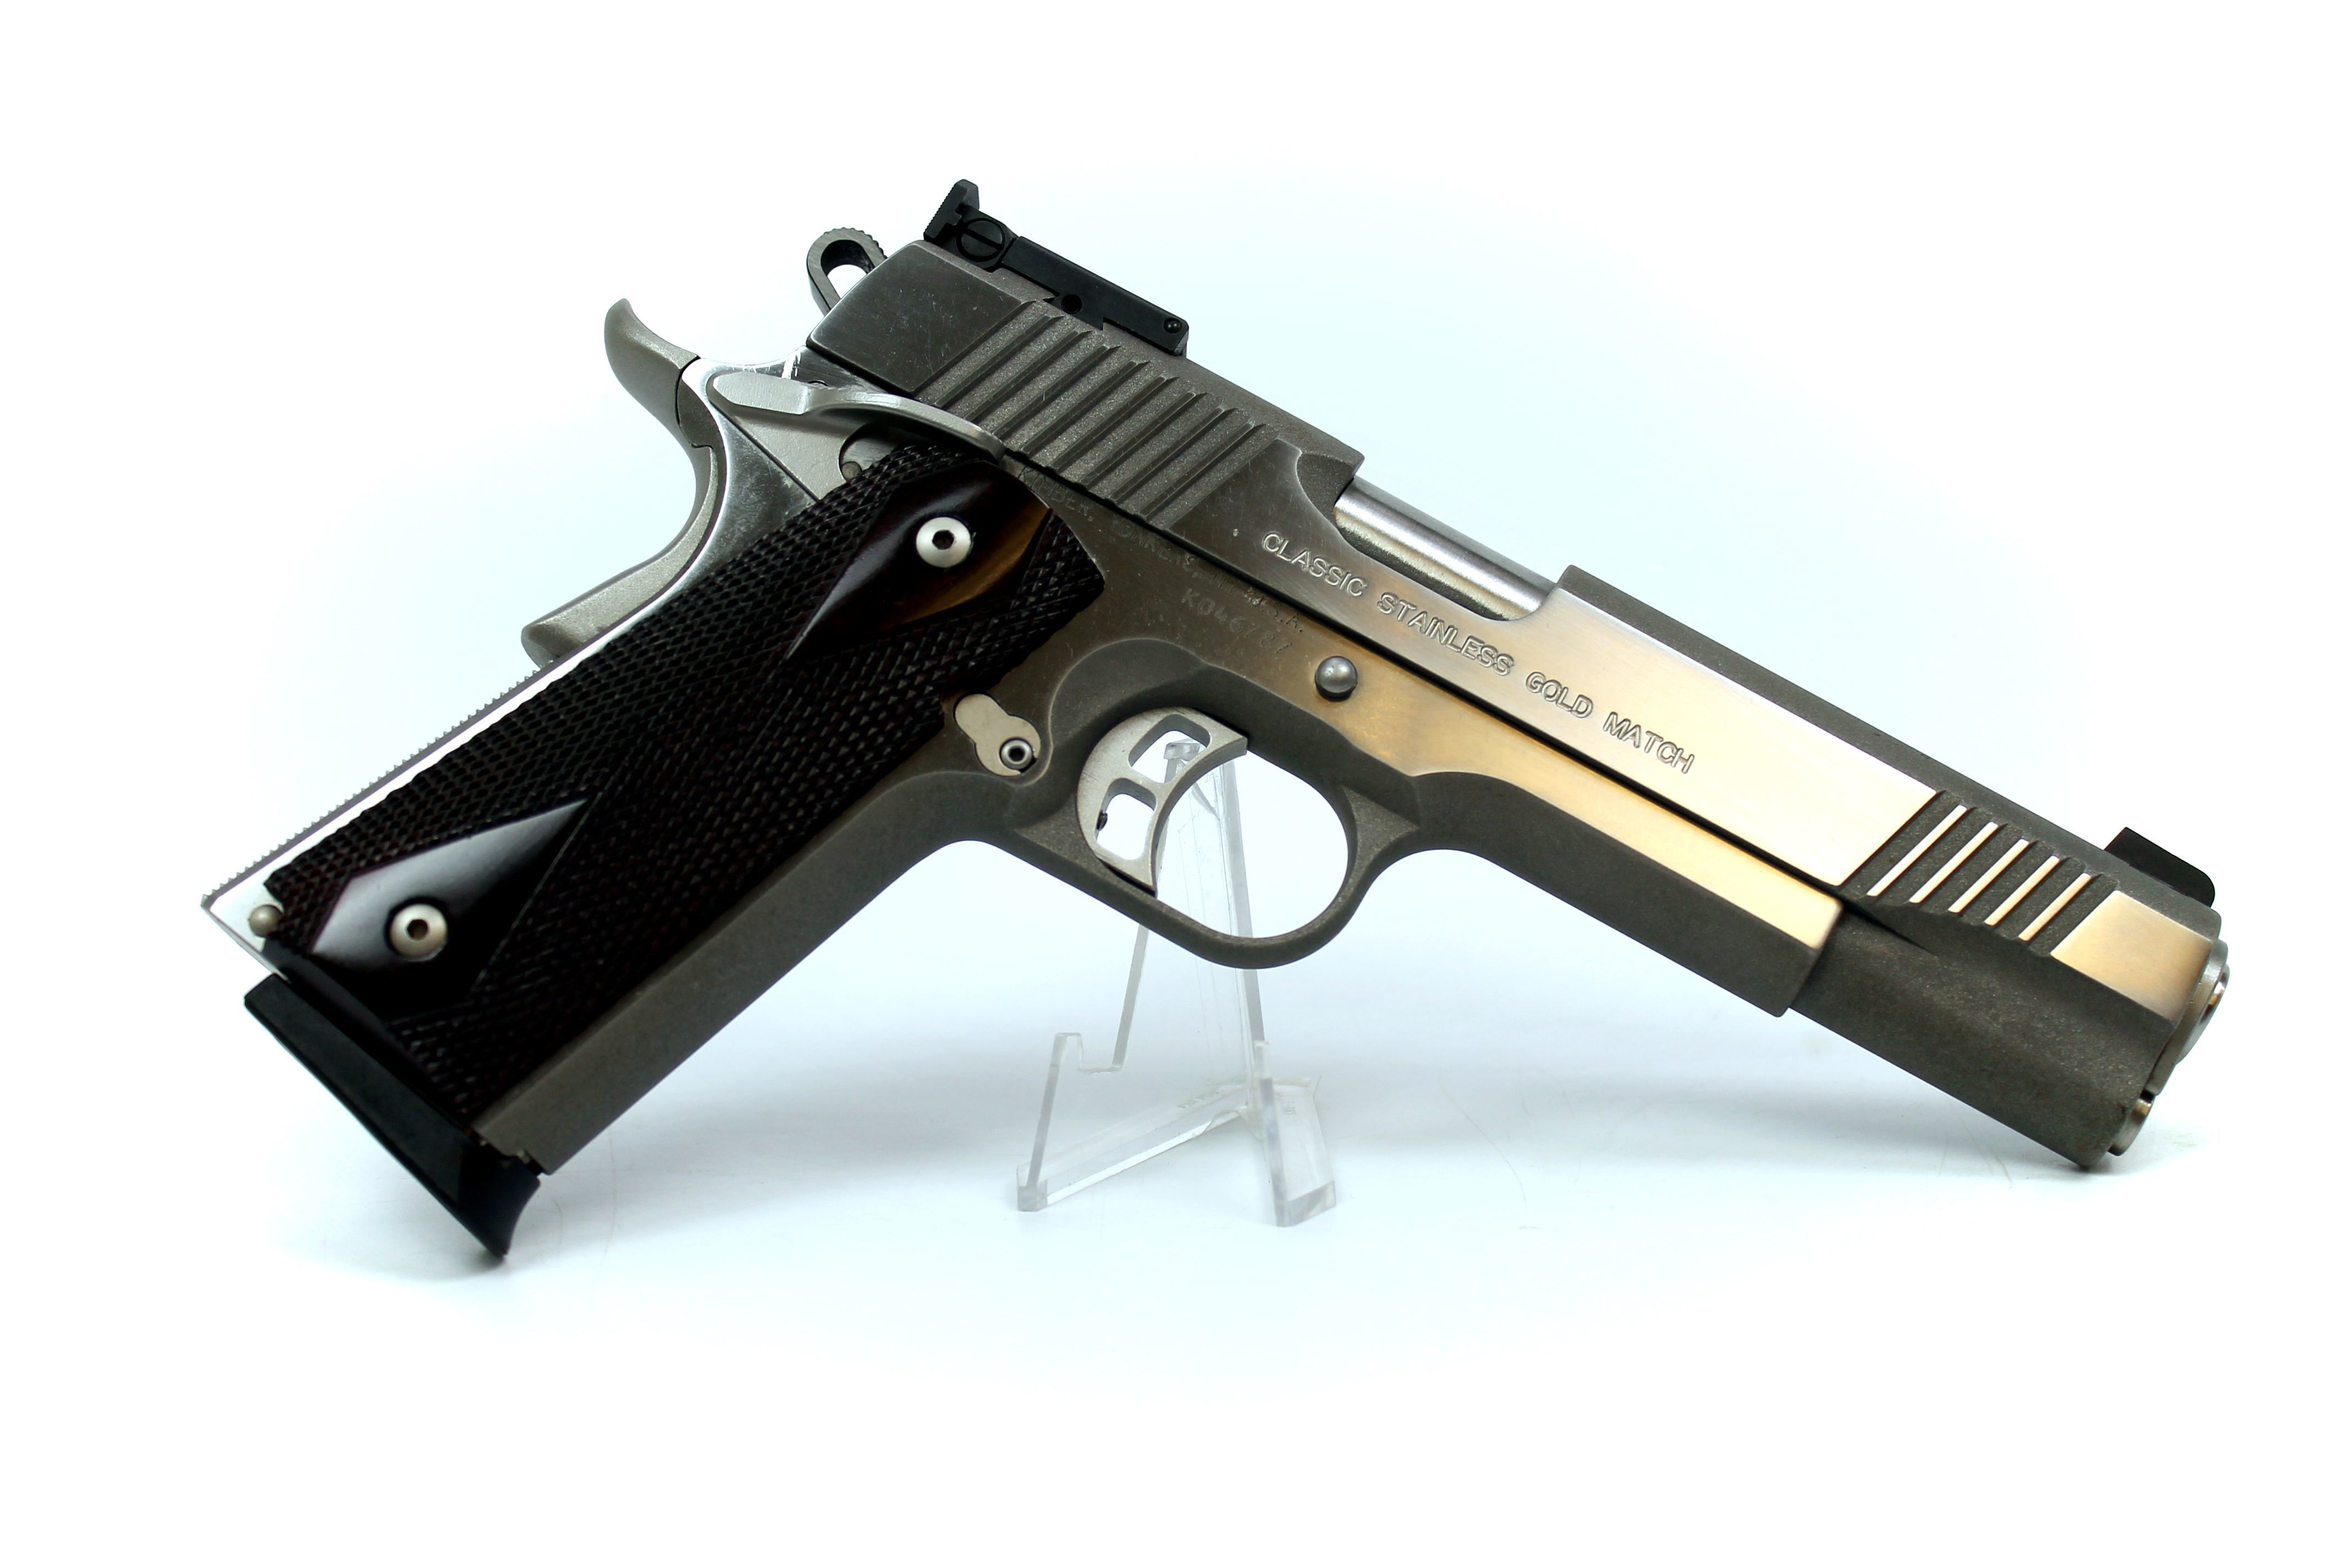 Kimber Classic Gold Match SST .45 ACP Single Action Semi-Automatic Pistol